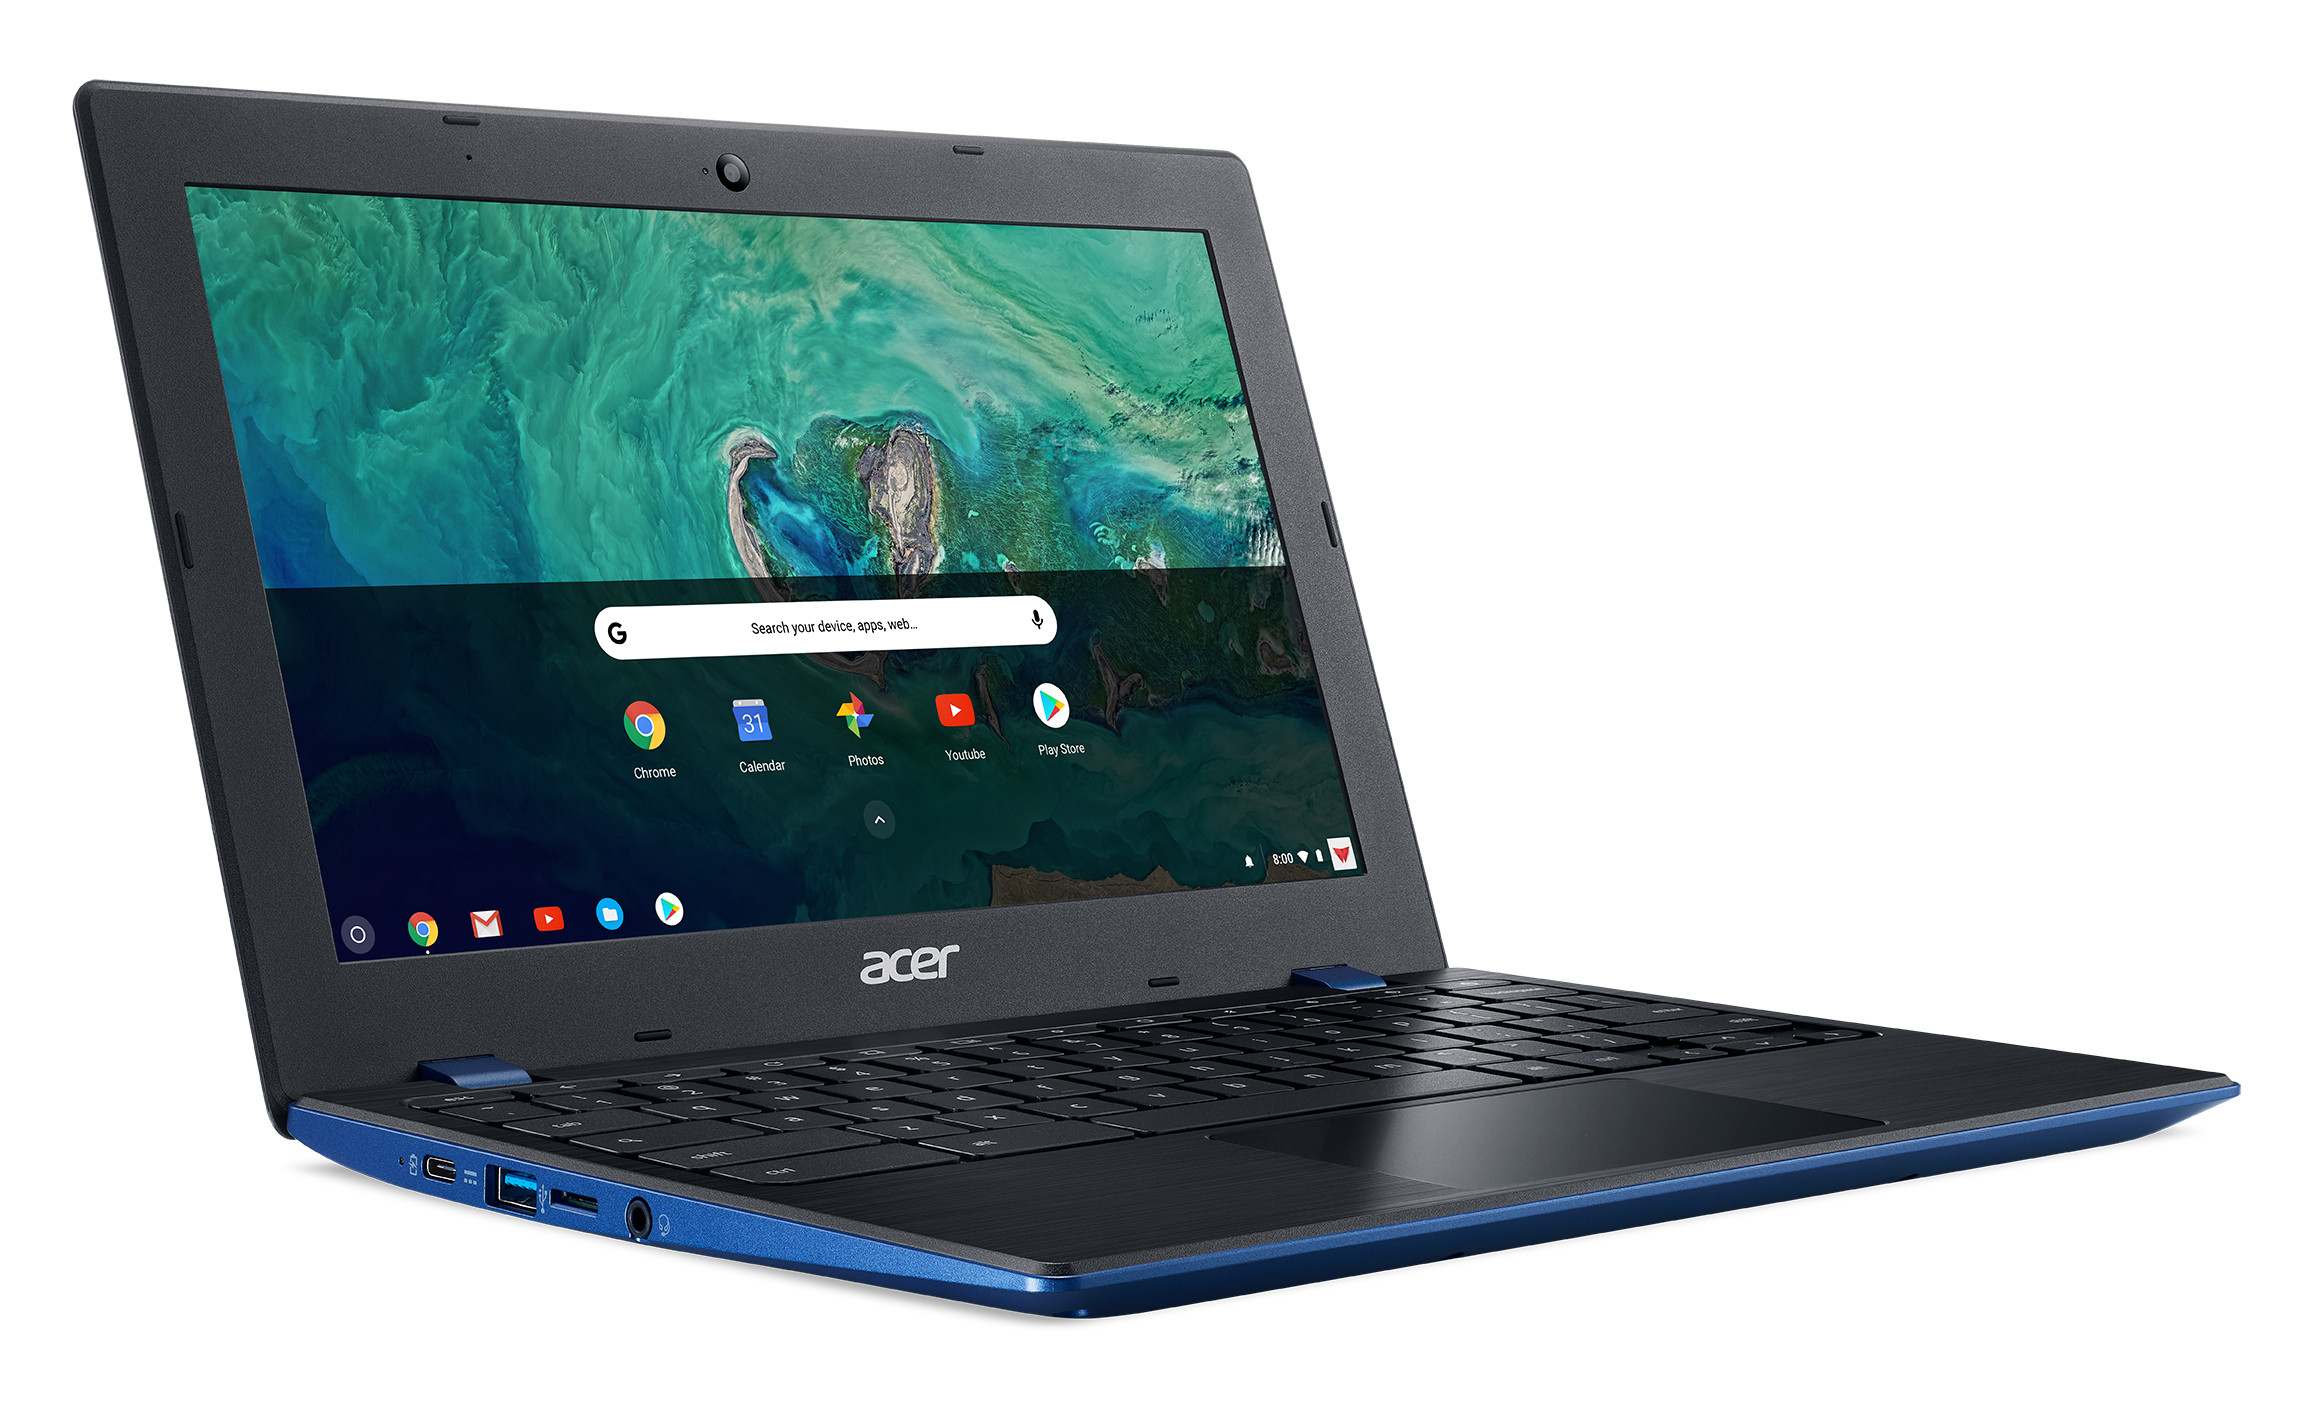 Acers beautiful new 270 chromebook 11 takes base level to play acer chromebook 11 cb311 8h and 8htb 2 ccuart Gallery